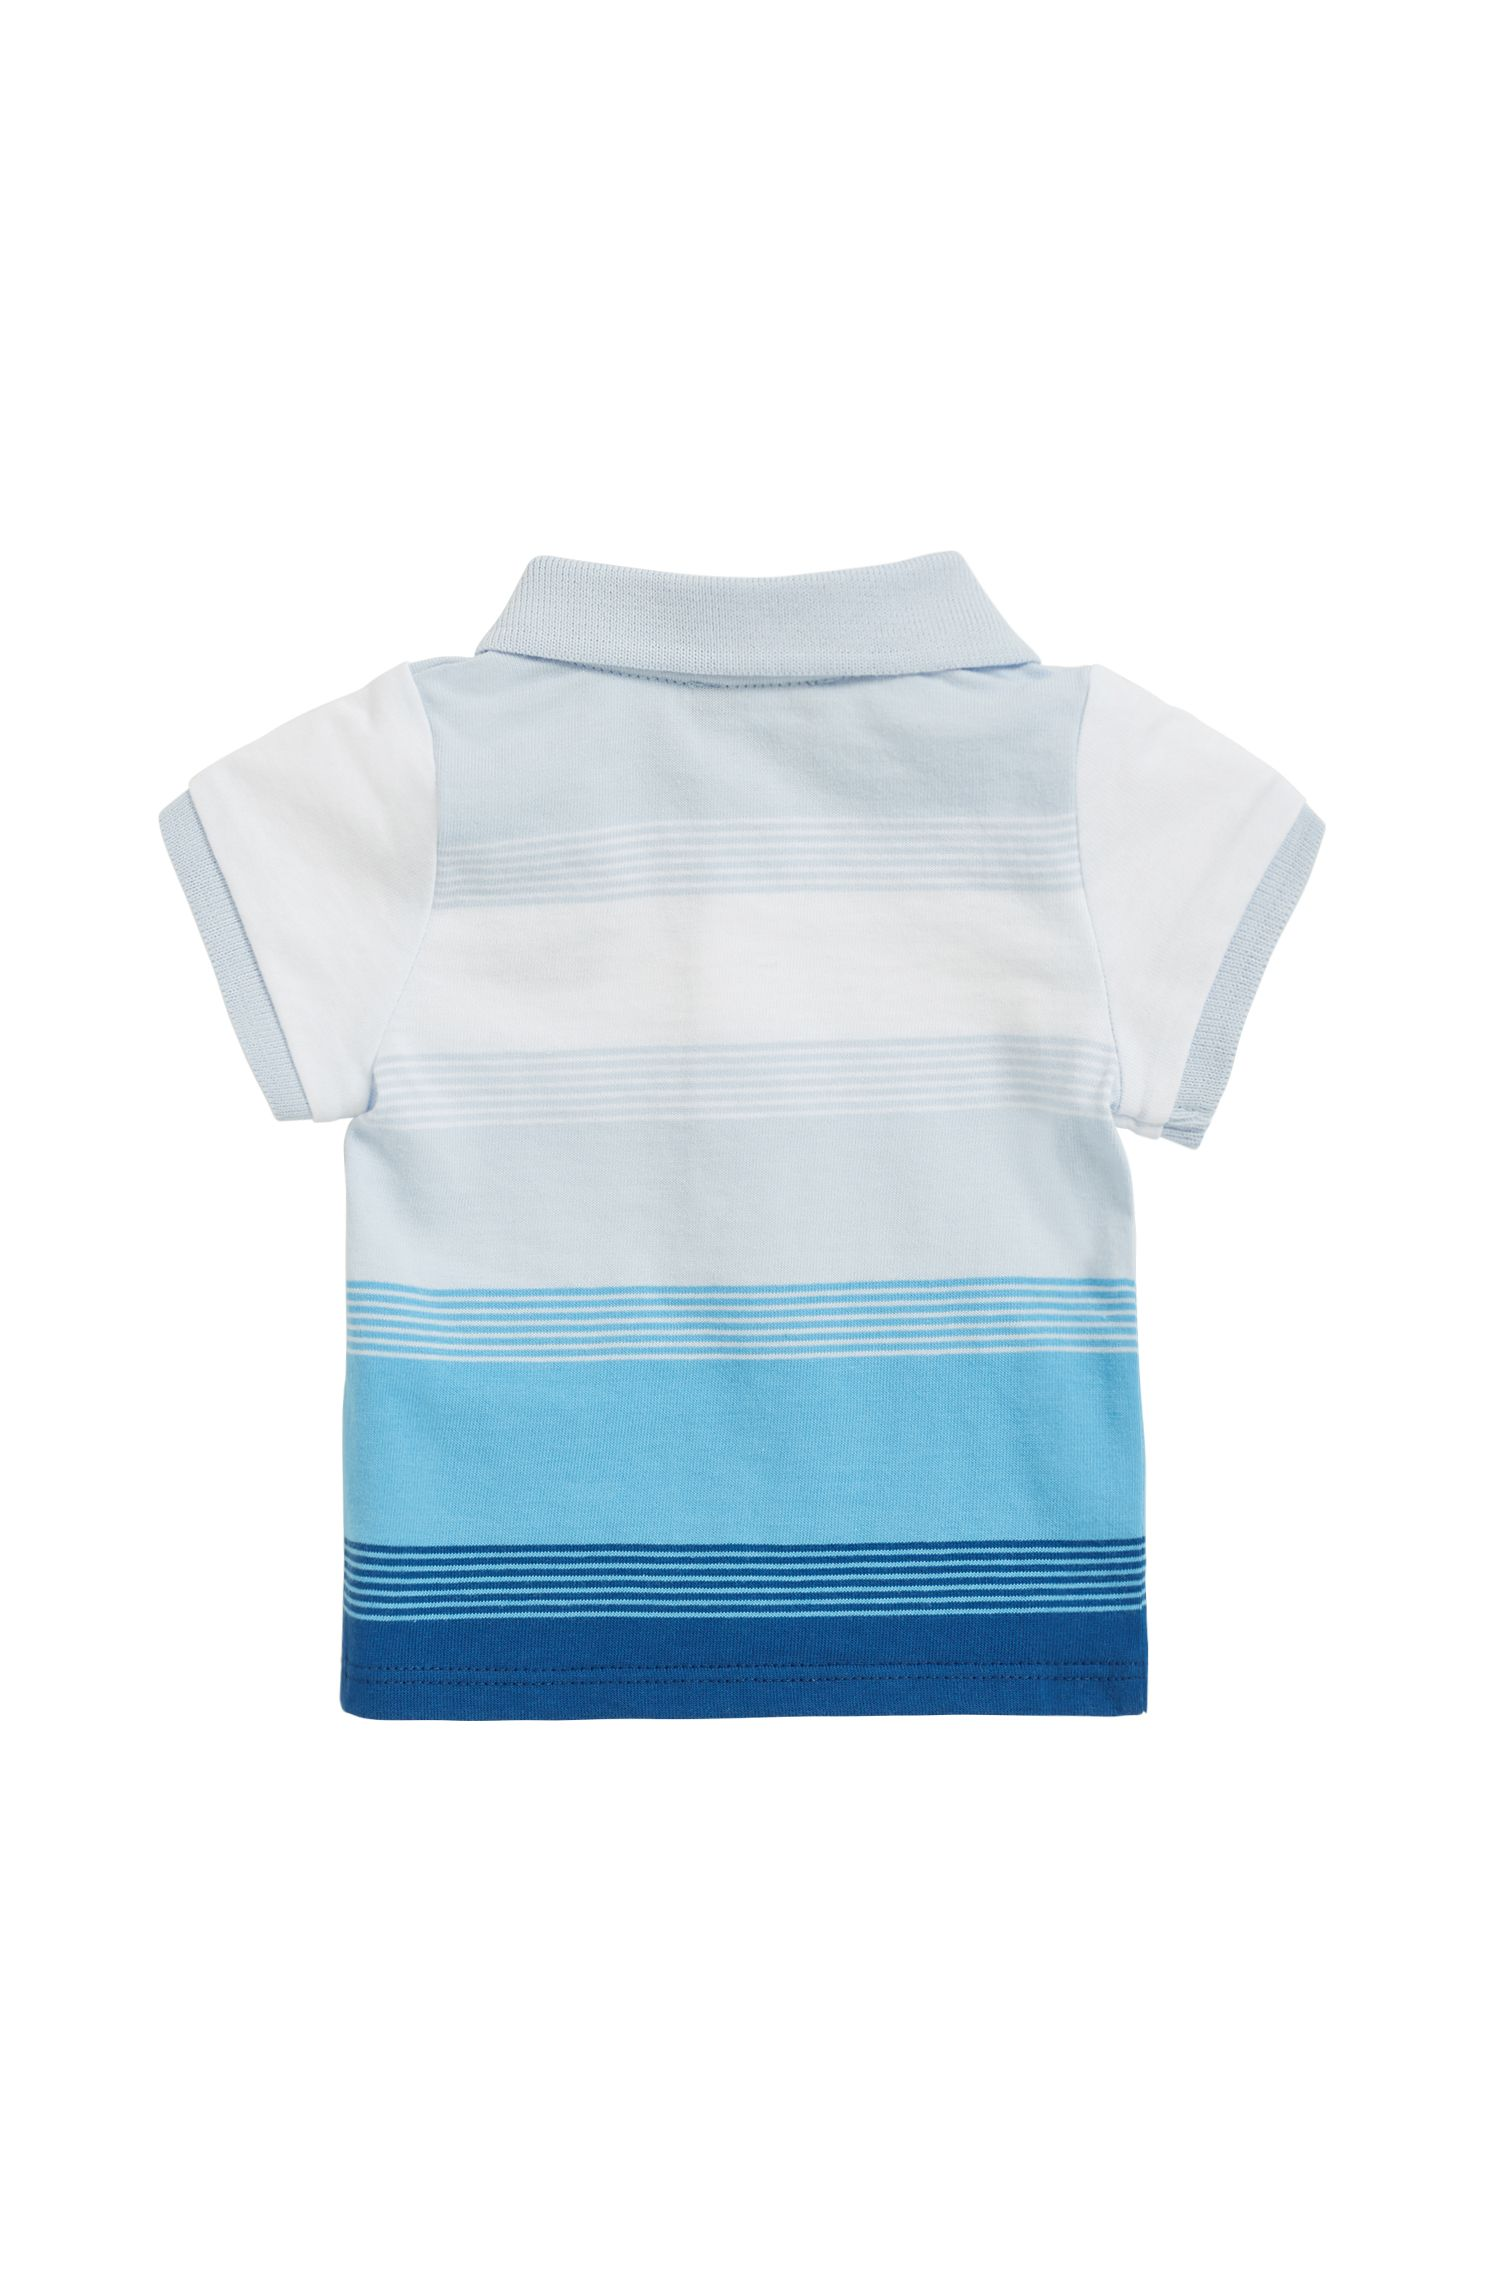 Baby polo shirt in striped cotton jersey